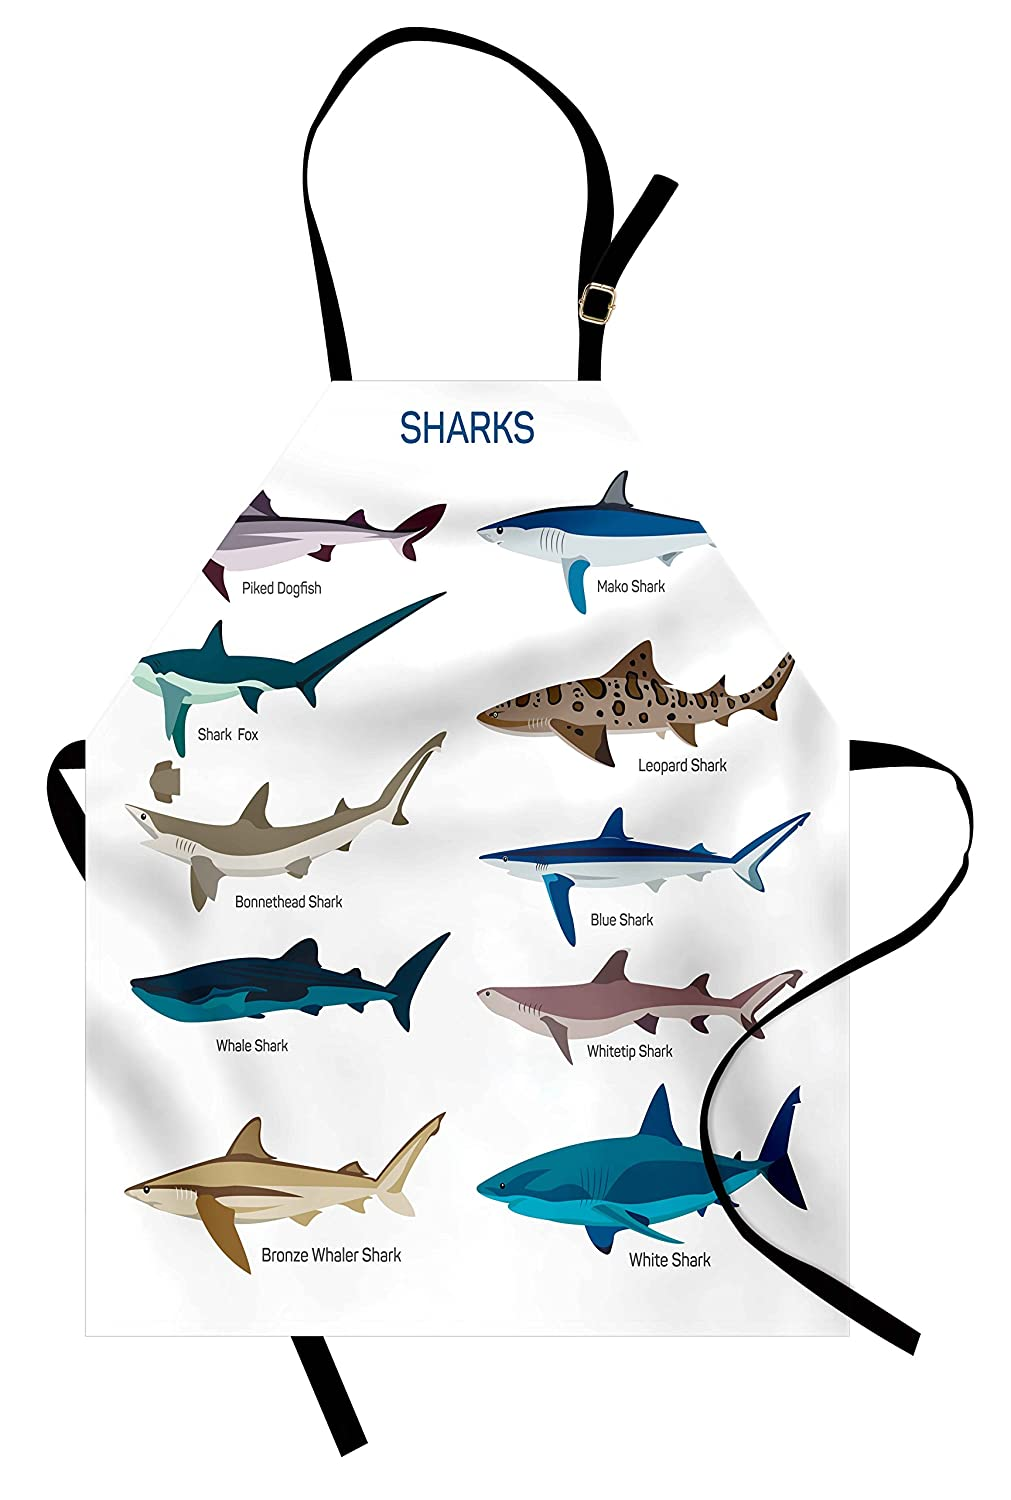 Ambesonne Shark Apron, Types of Sharks Bronze Whaler Piked Dogfish Whlae Shark Maritime Design Nautical, Unisex Kitchen Bib Apron with Adjustable Neck for Cooking Baking Gardening, Multicolor